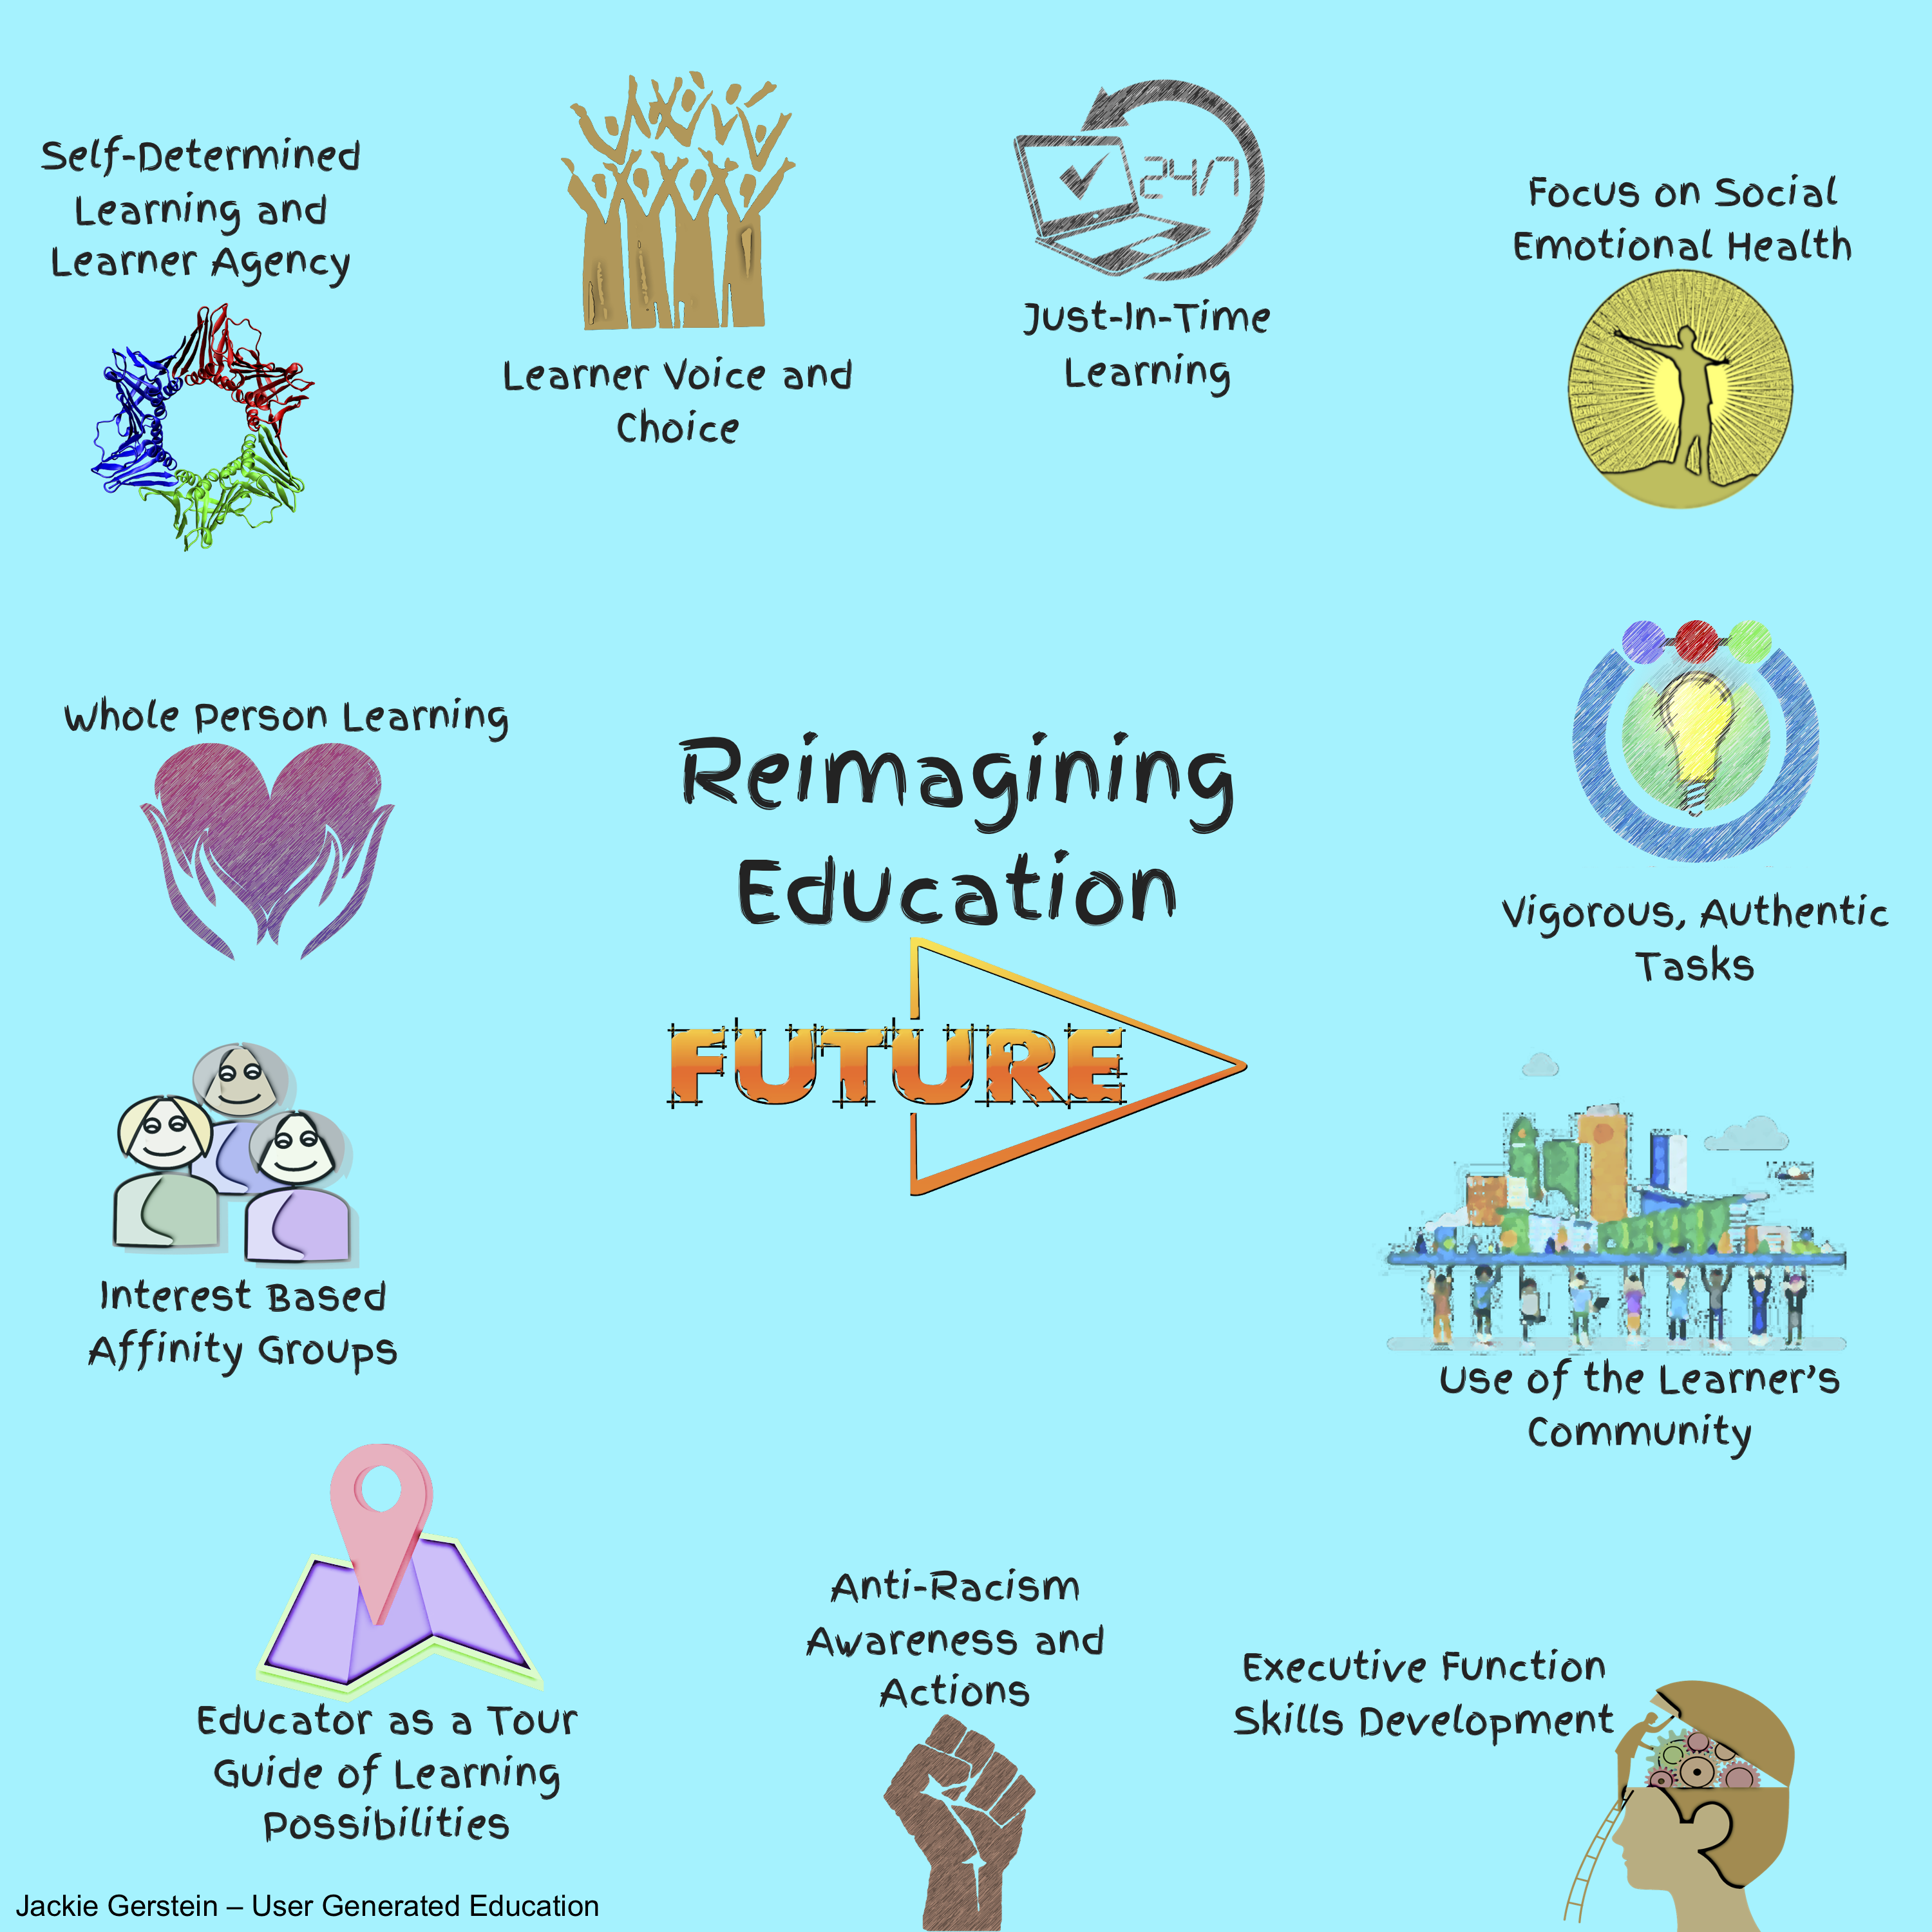 Reimagining Education: A Call for Action